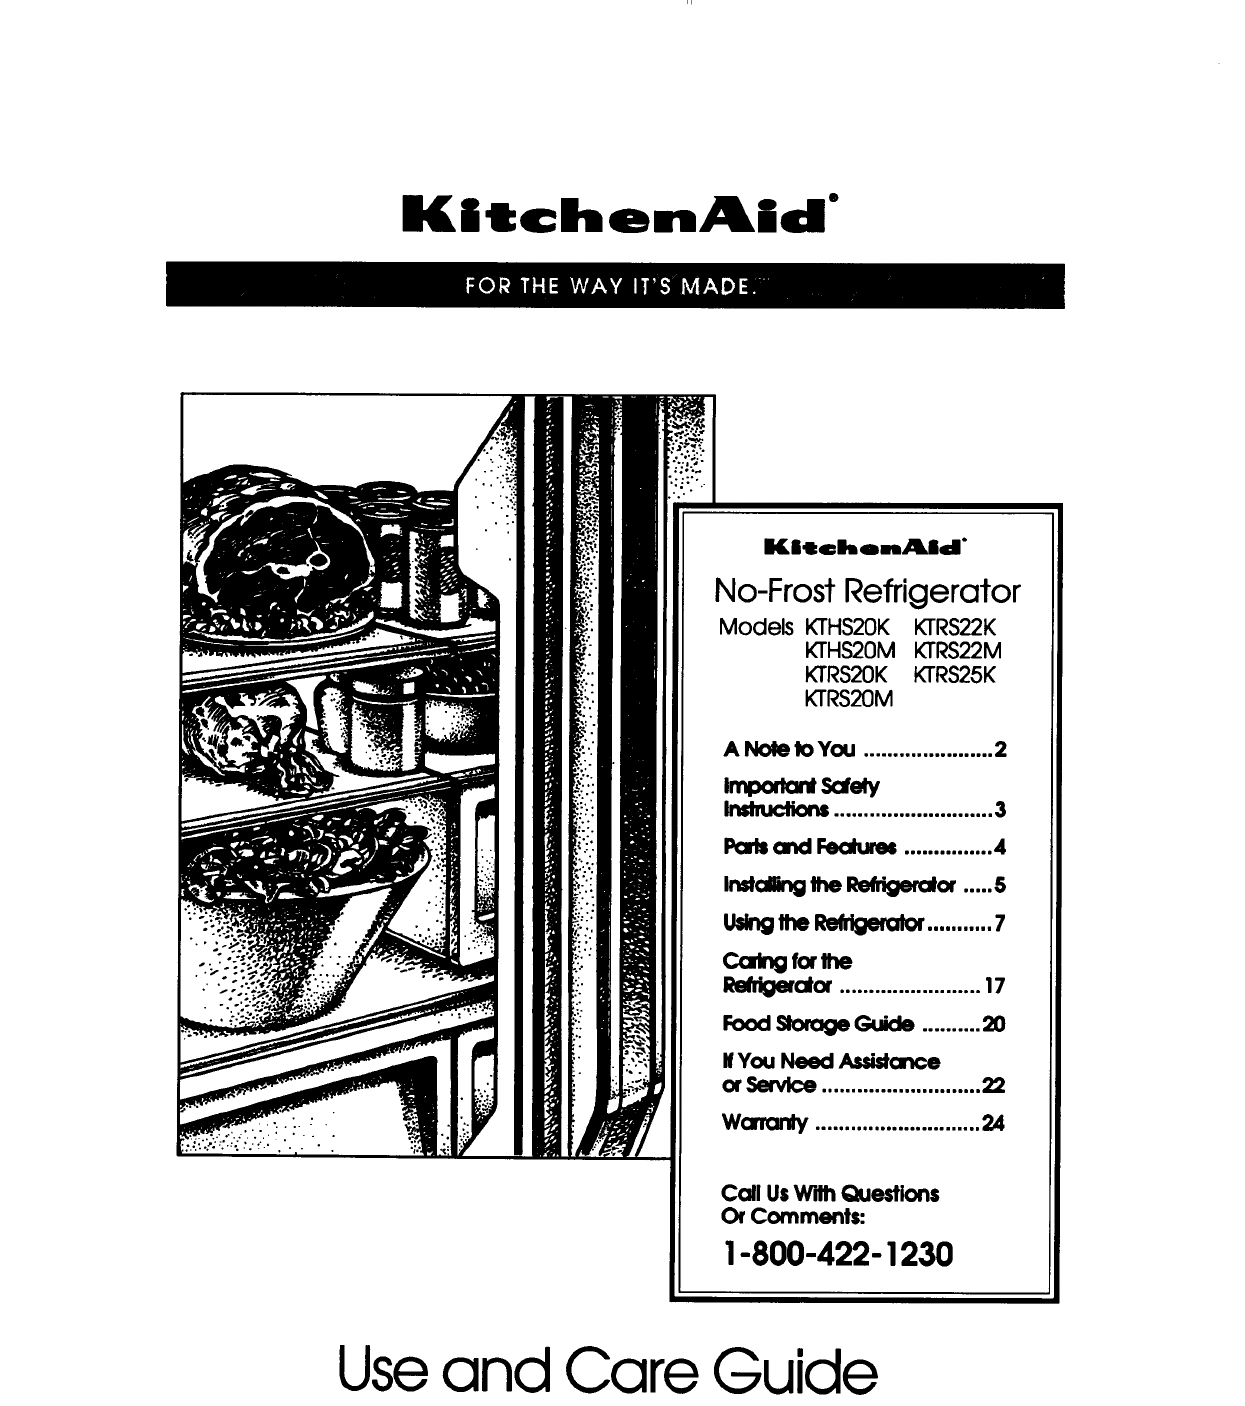 Wiring diagram for kitchenaid refrigerator the wiring diagram whirlpool fridge freezer wiring diagram images wiring diagram cheapraybanclubmaster Images